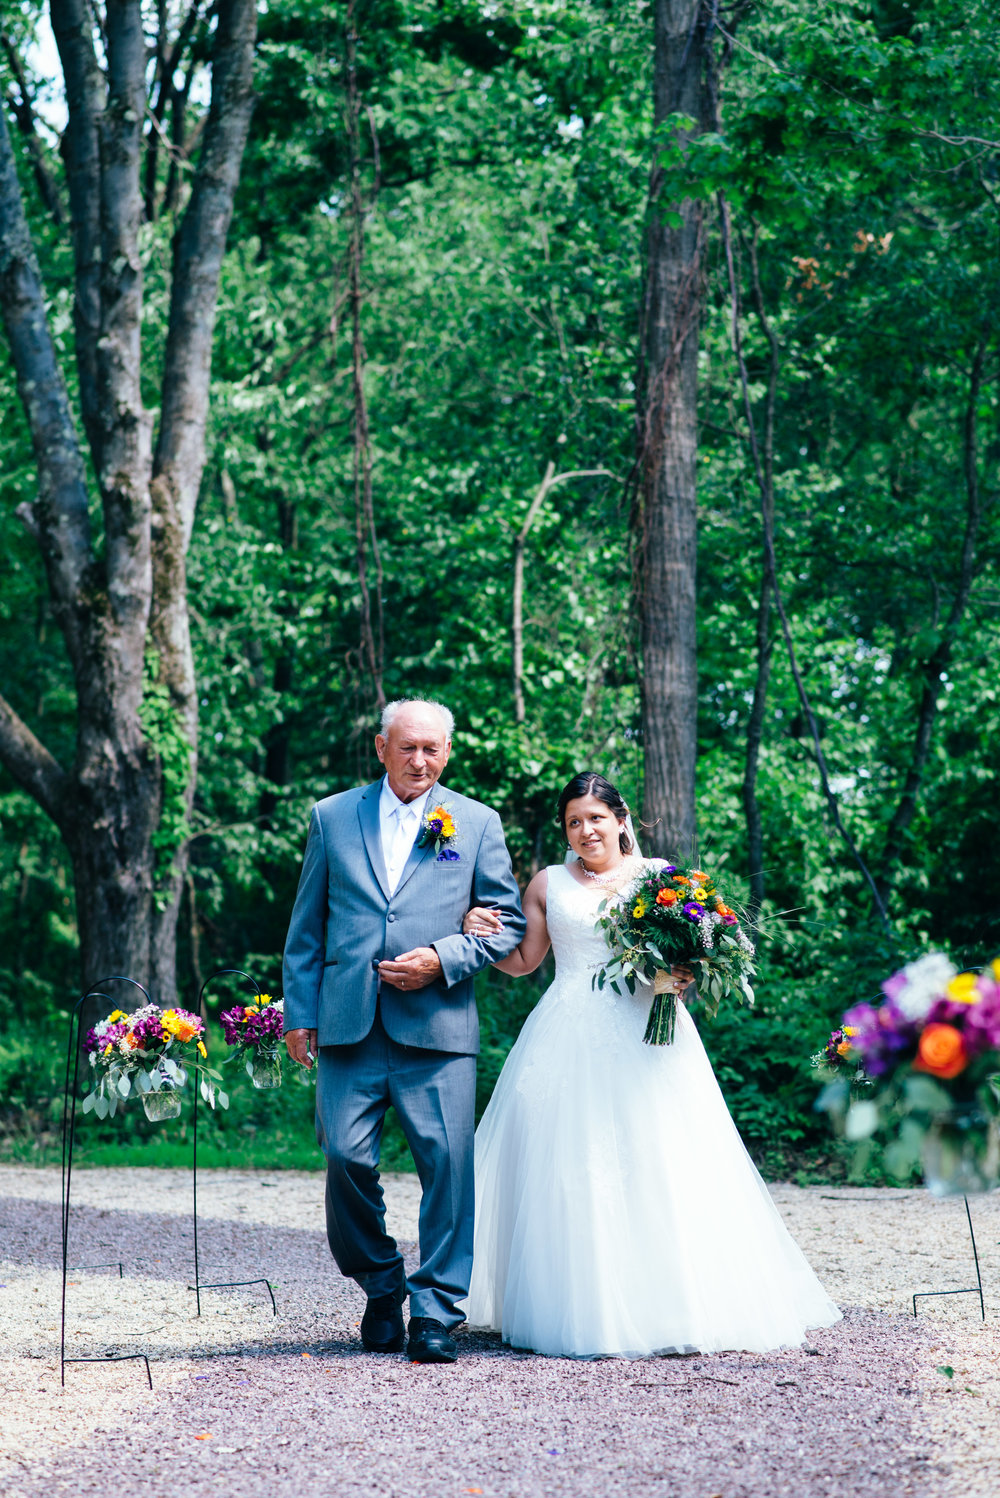 Bride walked down the aisle by her grandfather at The Farm on the Ridge in Hooversville, PA